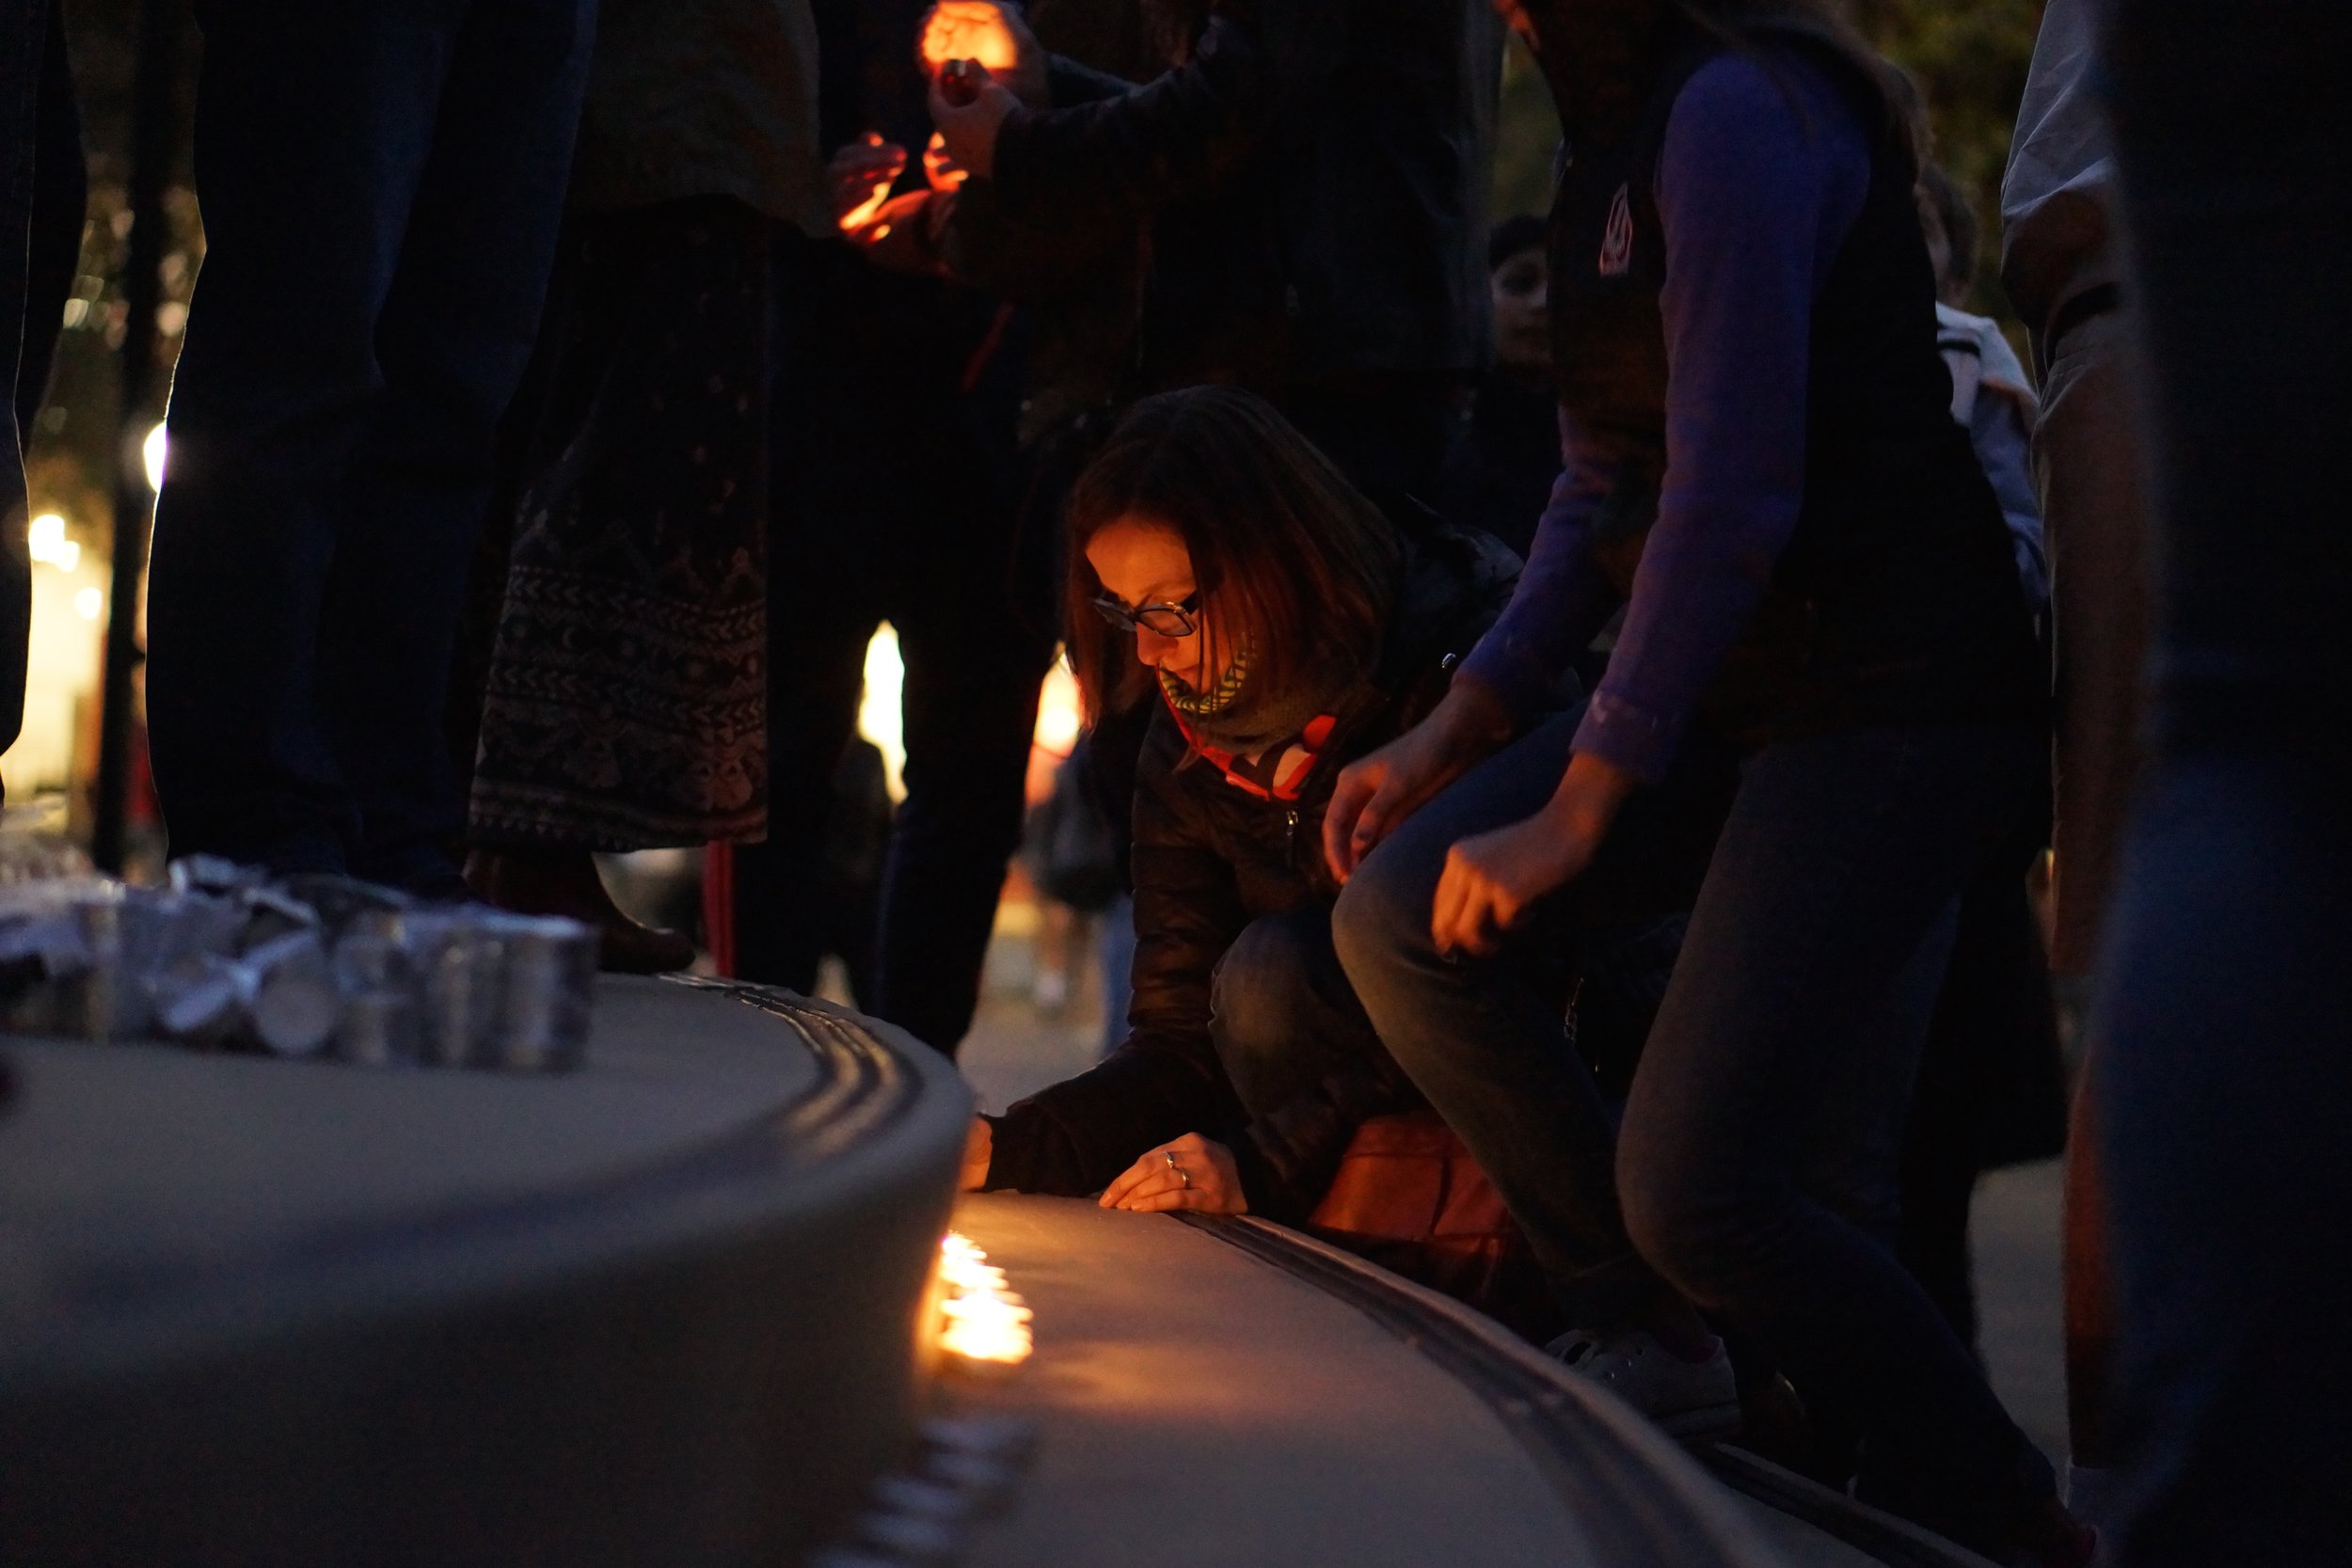 Students held an unofficial vigil in White Plaza on Sunday evening, in memory of recent terror attacks in Baghdad, Beirut and Paris.